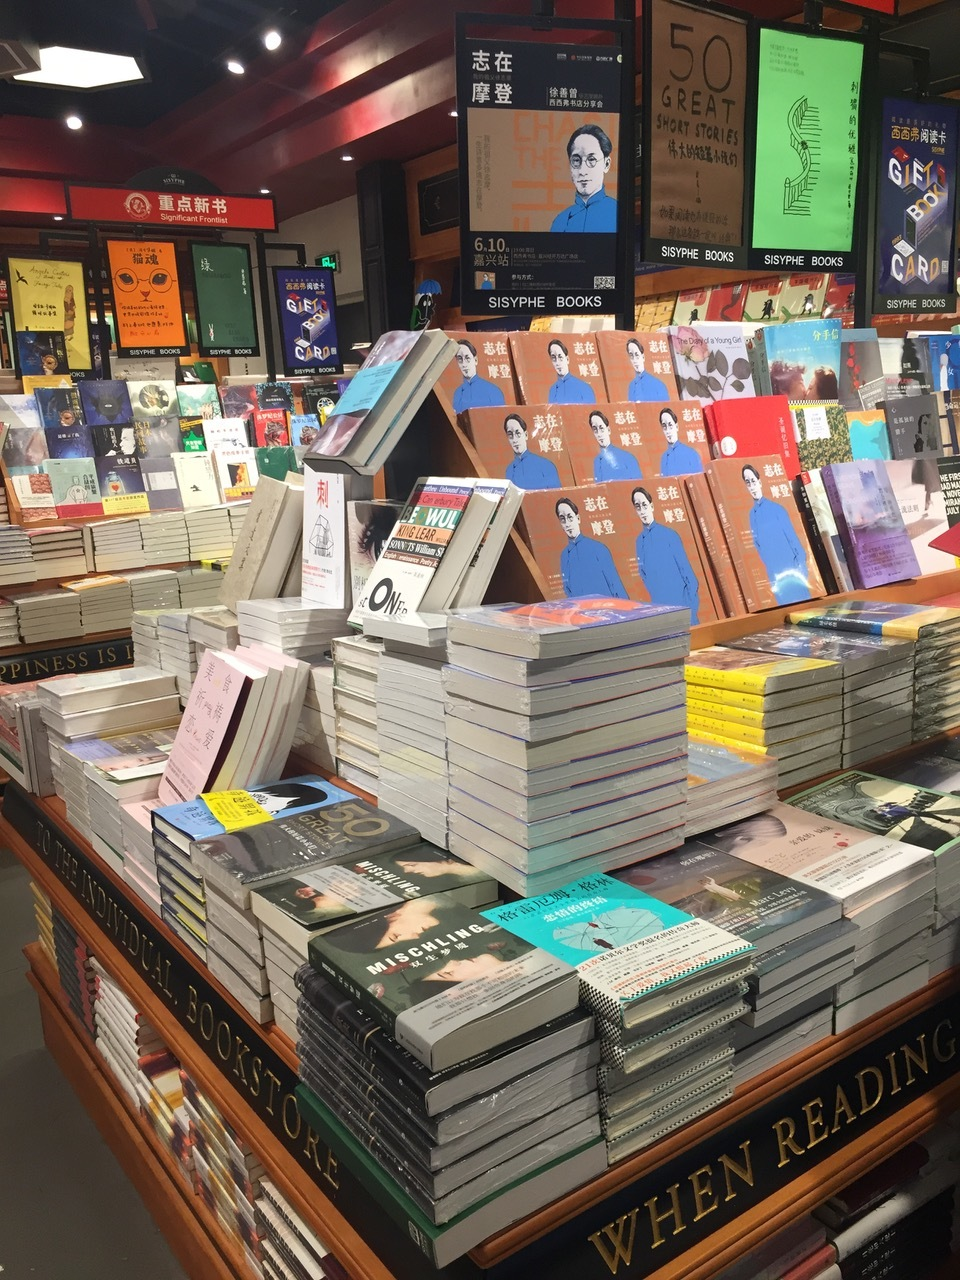 Copies of  Chasing the Modern , with its vibrant orange and blue cover that was designed for the Chinese edition, were displayed prominently.